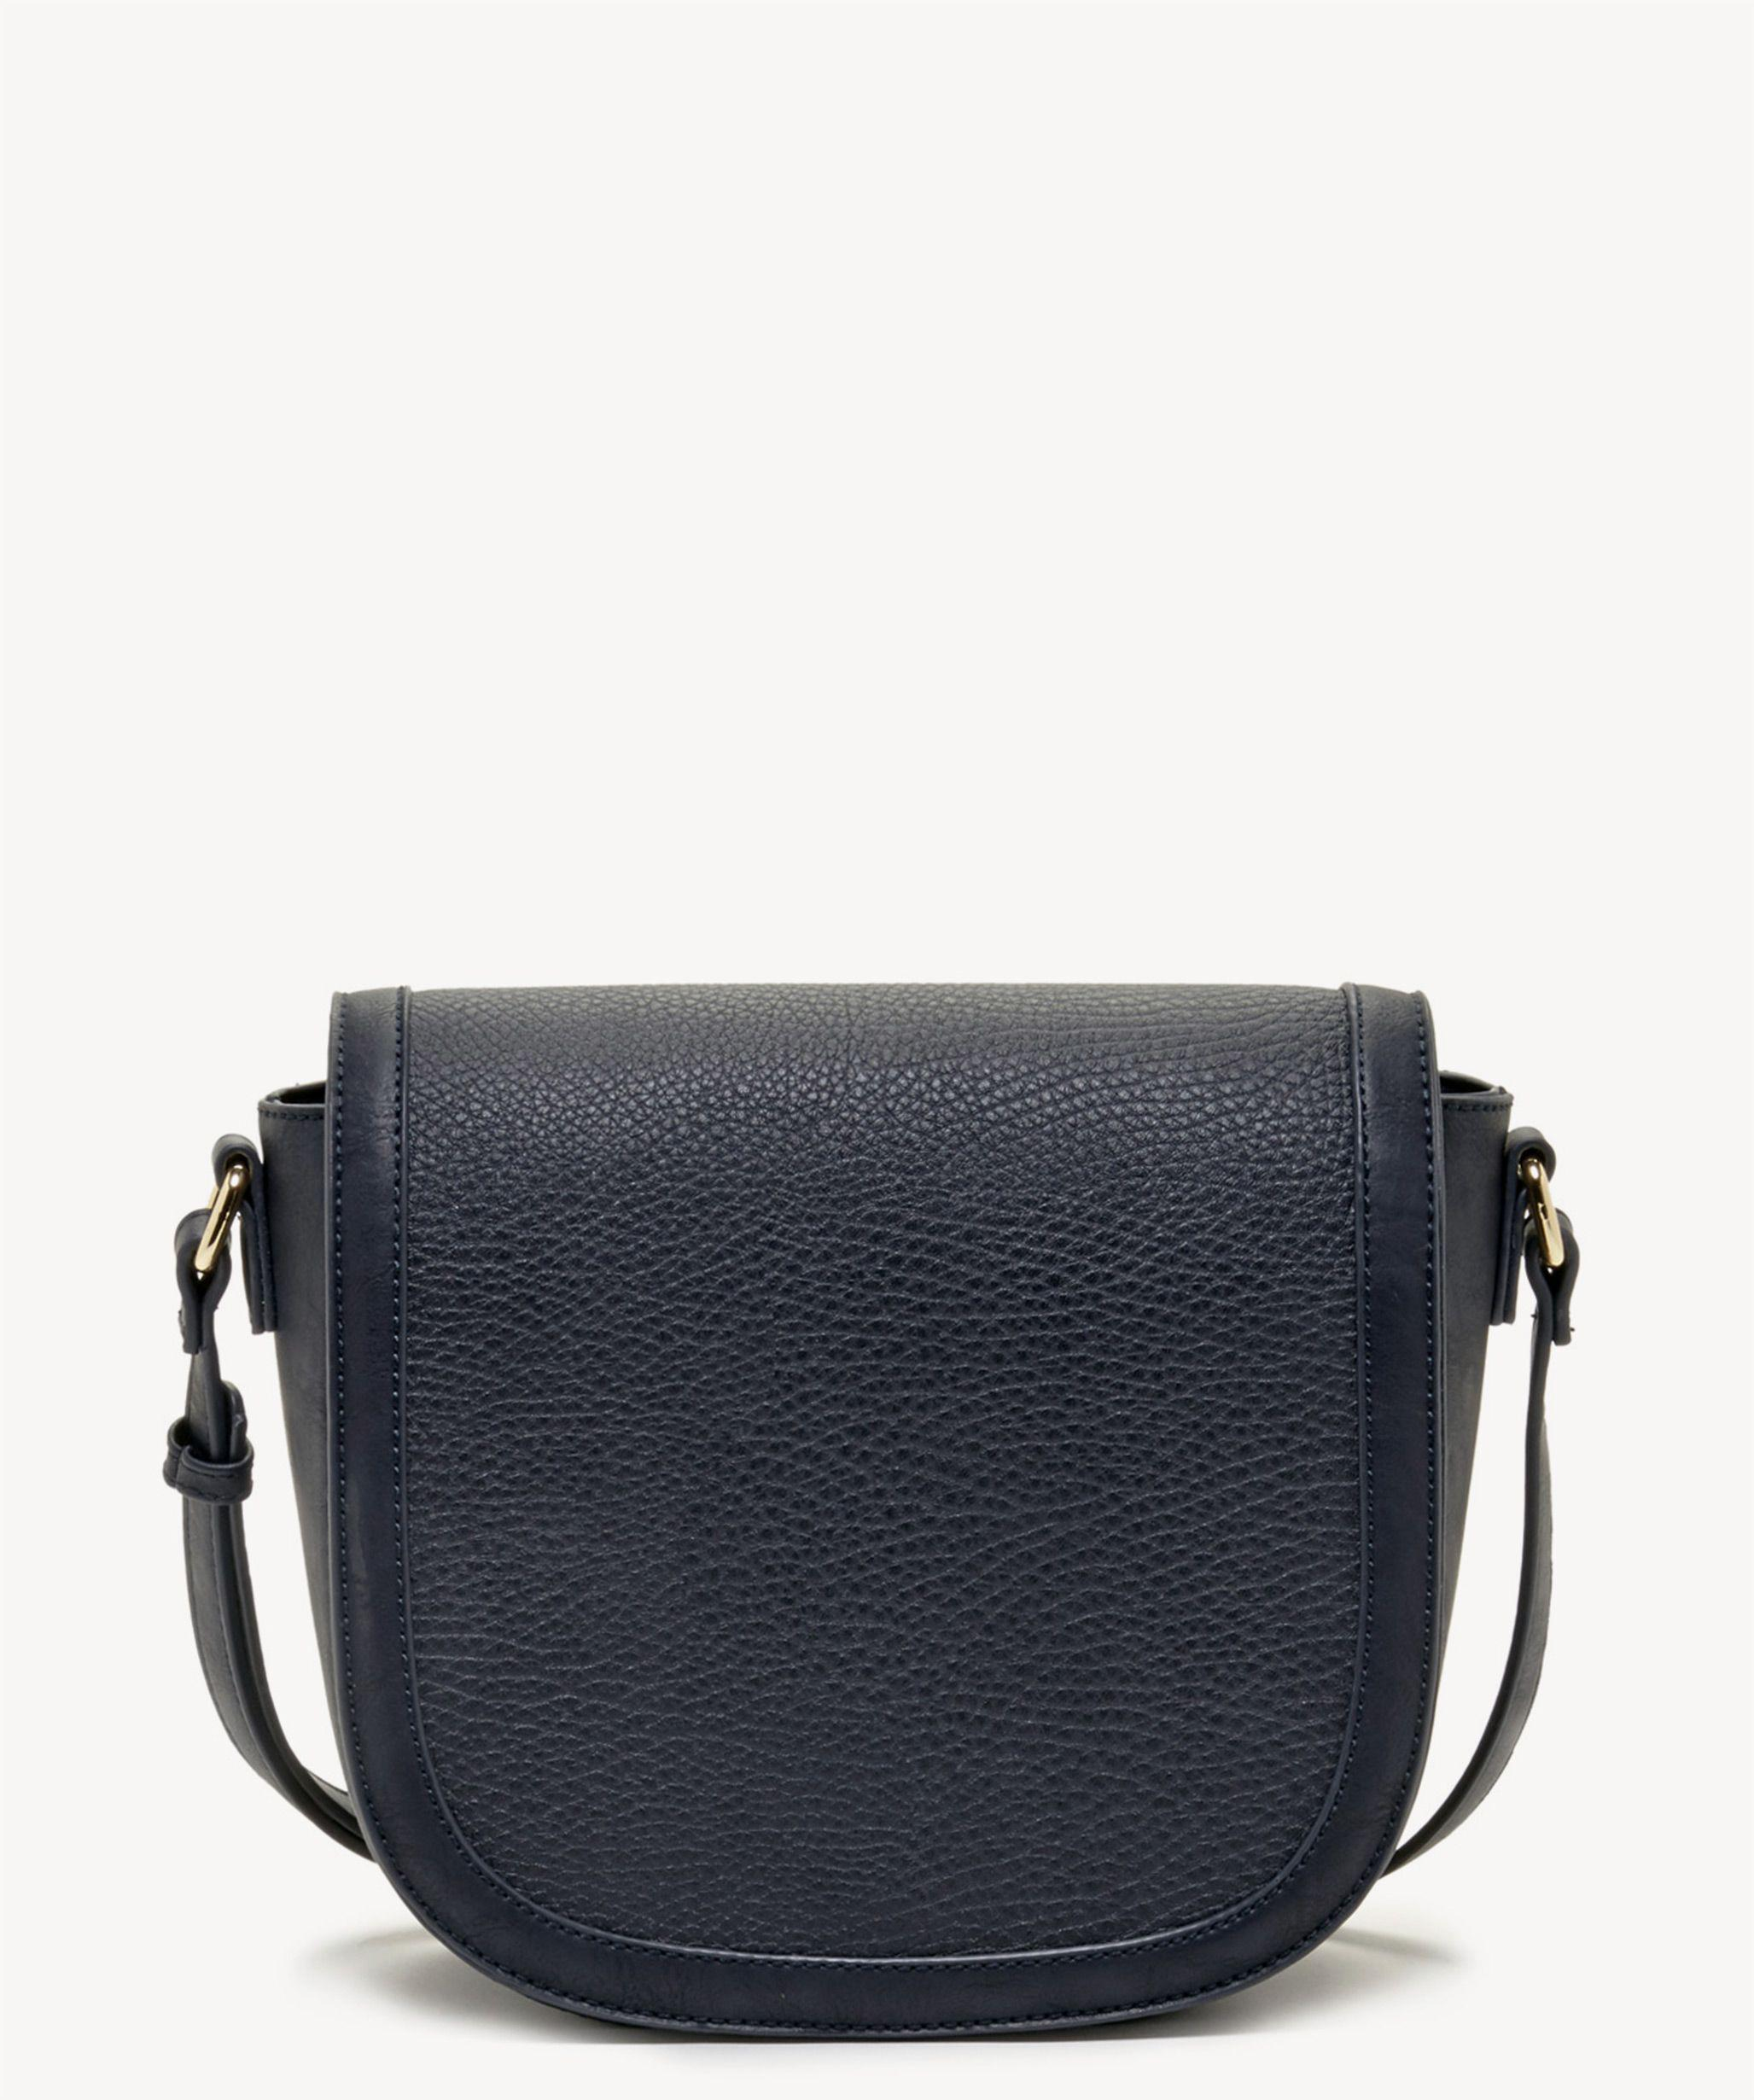 Lyst - Sole Society Finnigan Mixed Material Crossbody in Blue 98d66dc0fc542